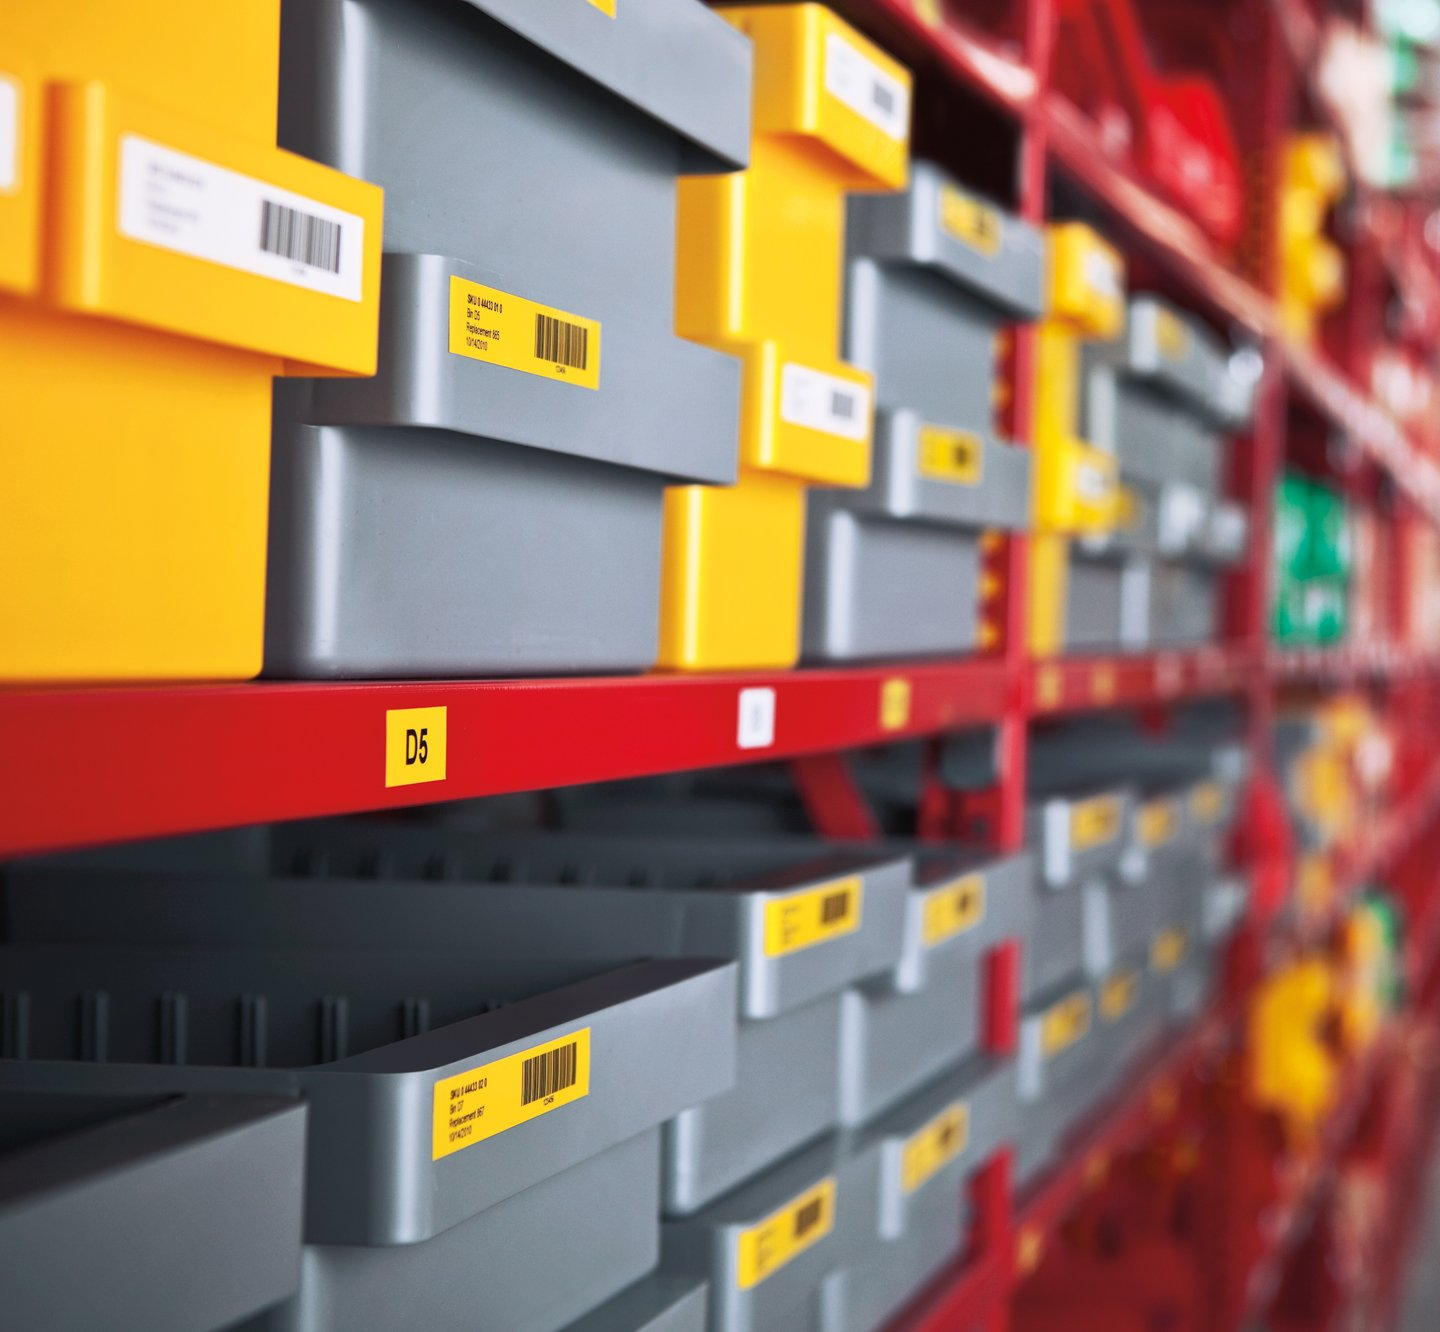 Rows of plastic bins with white and yellow barcode labels.